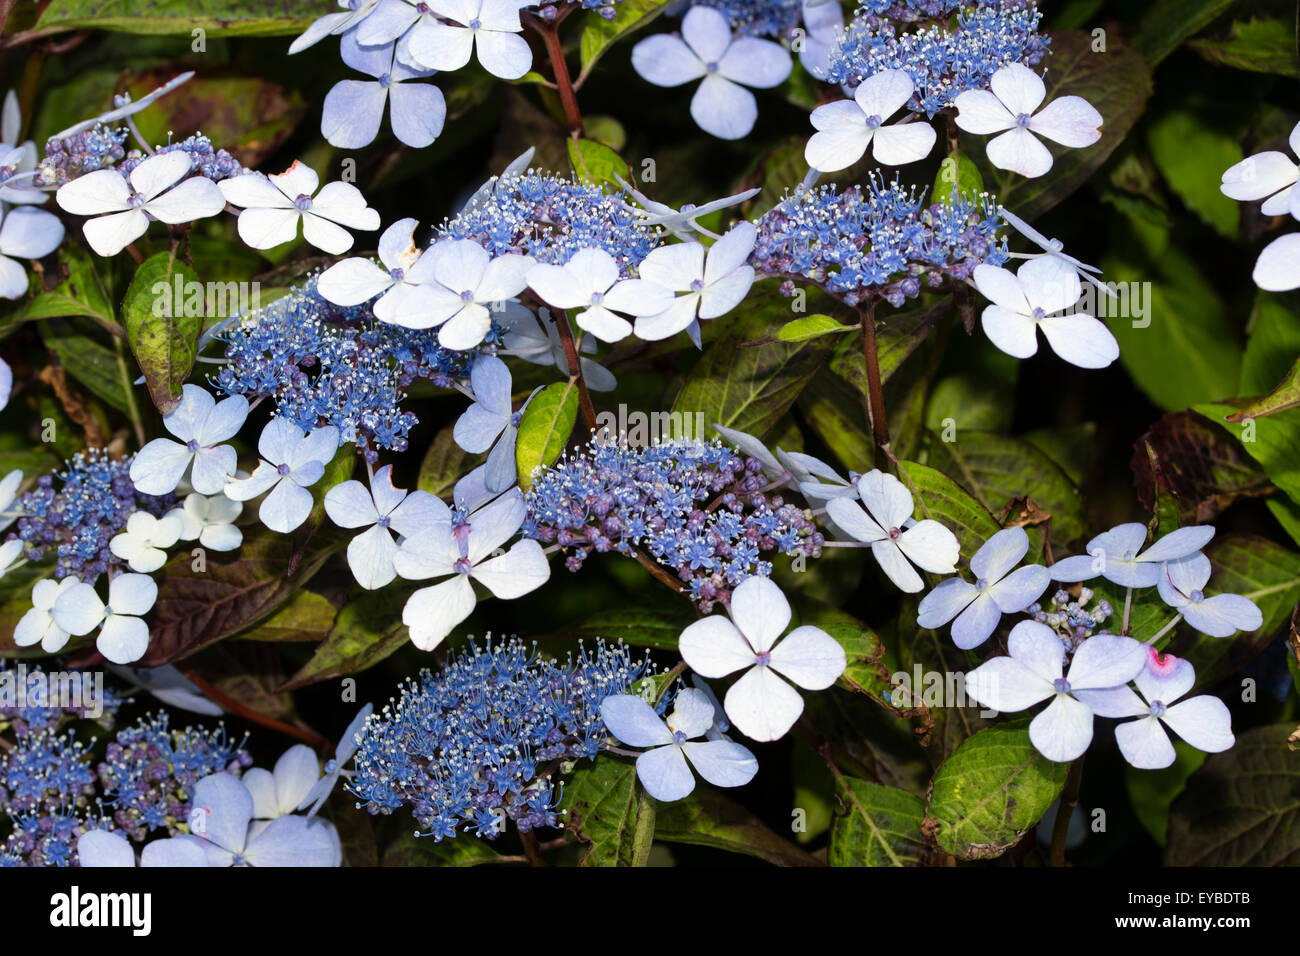 Blue and white lacecap flowers of hydrangea serrata bluebird blue and white lacecap flowers of hydrangea serrata bluebird dhlflorist Image collections